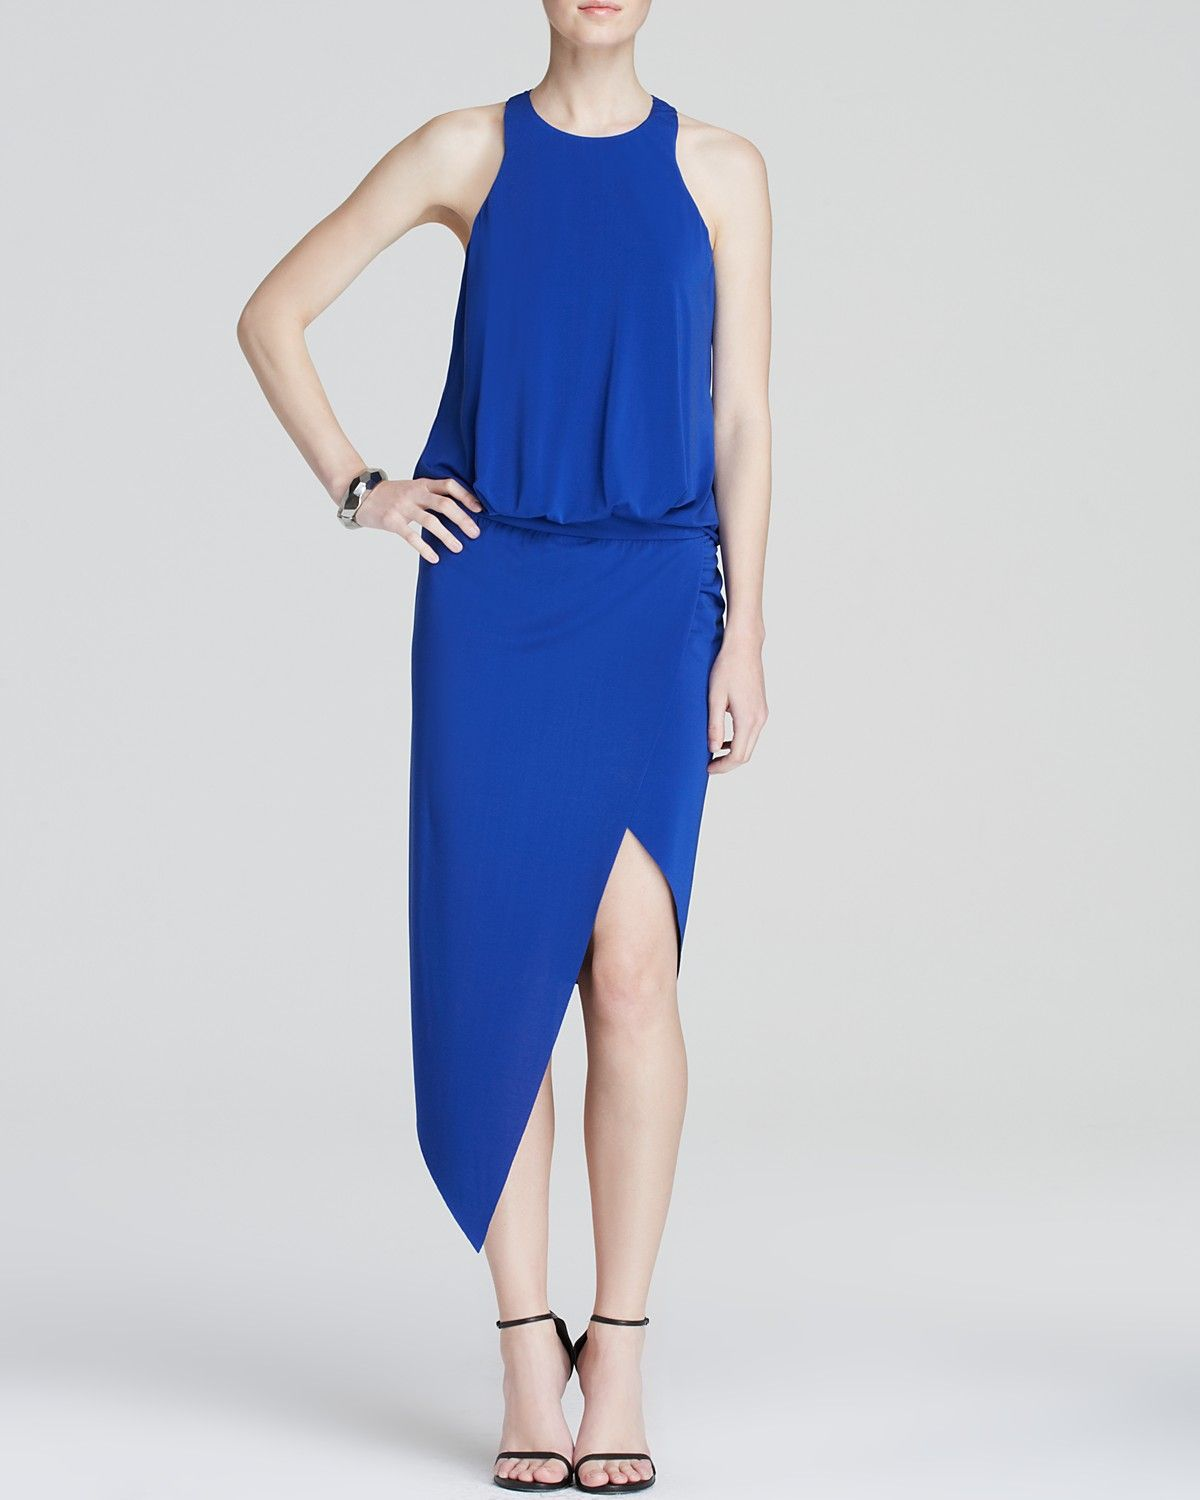 Elizabeth and James Dress - Rowan | Bloomingdale's